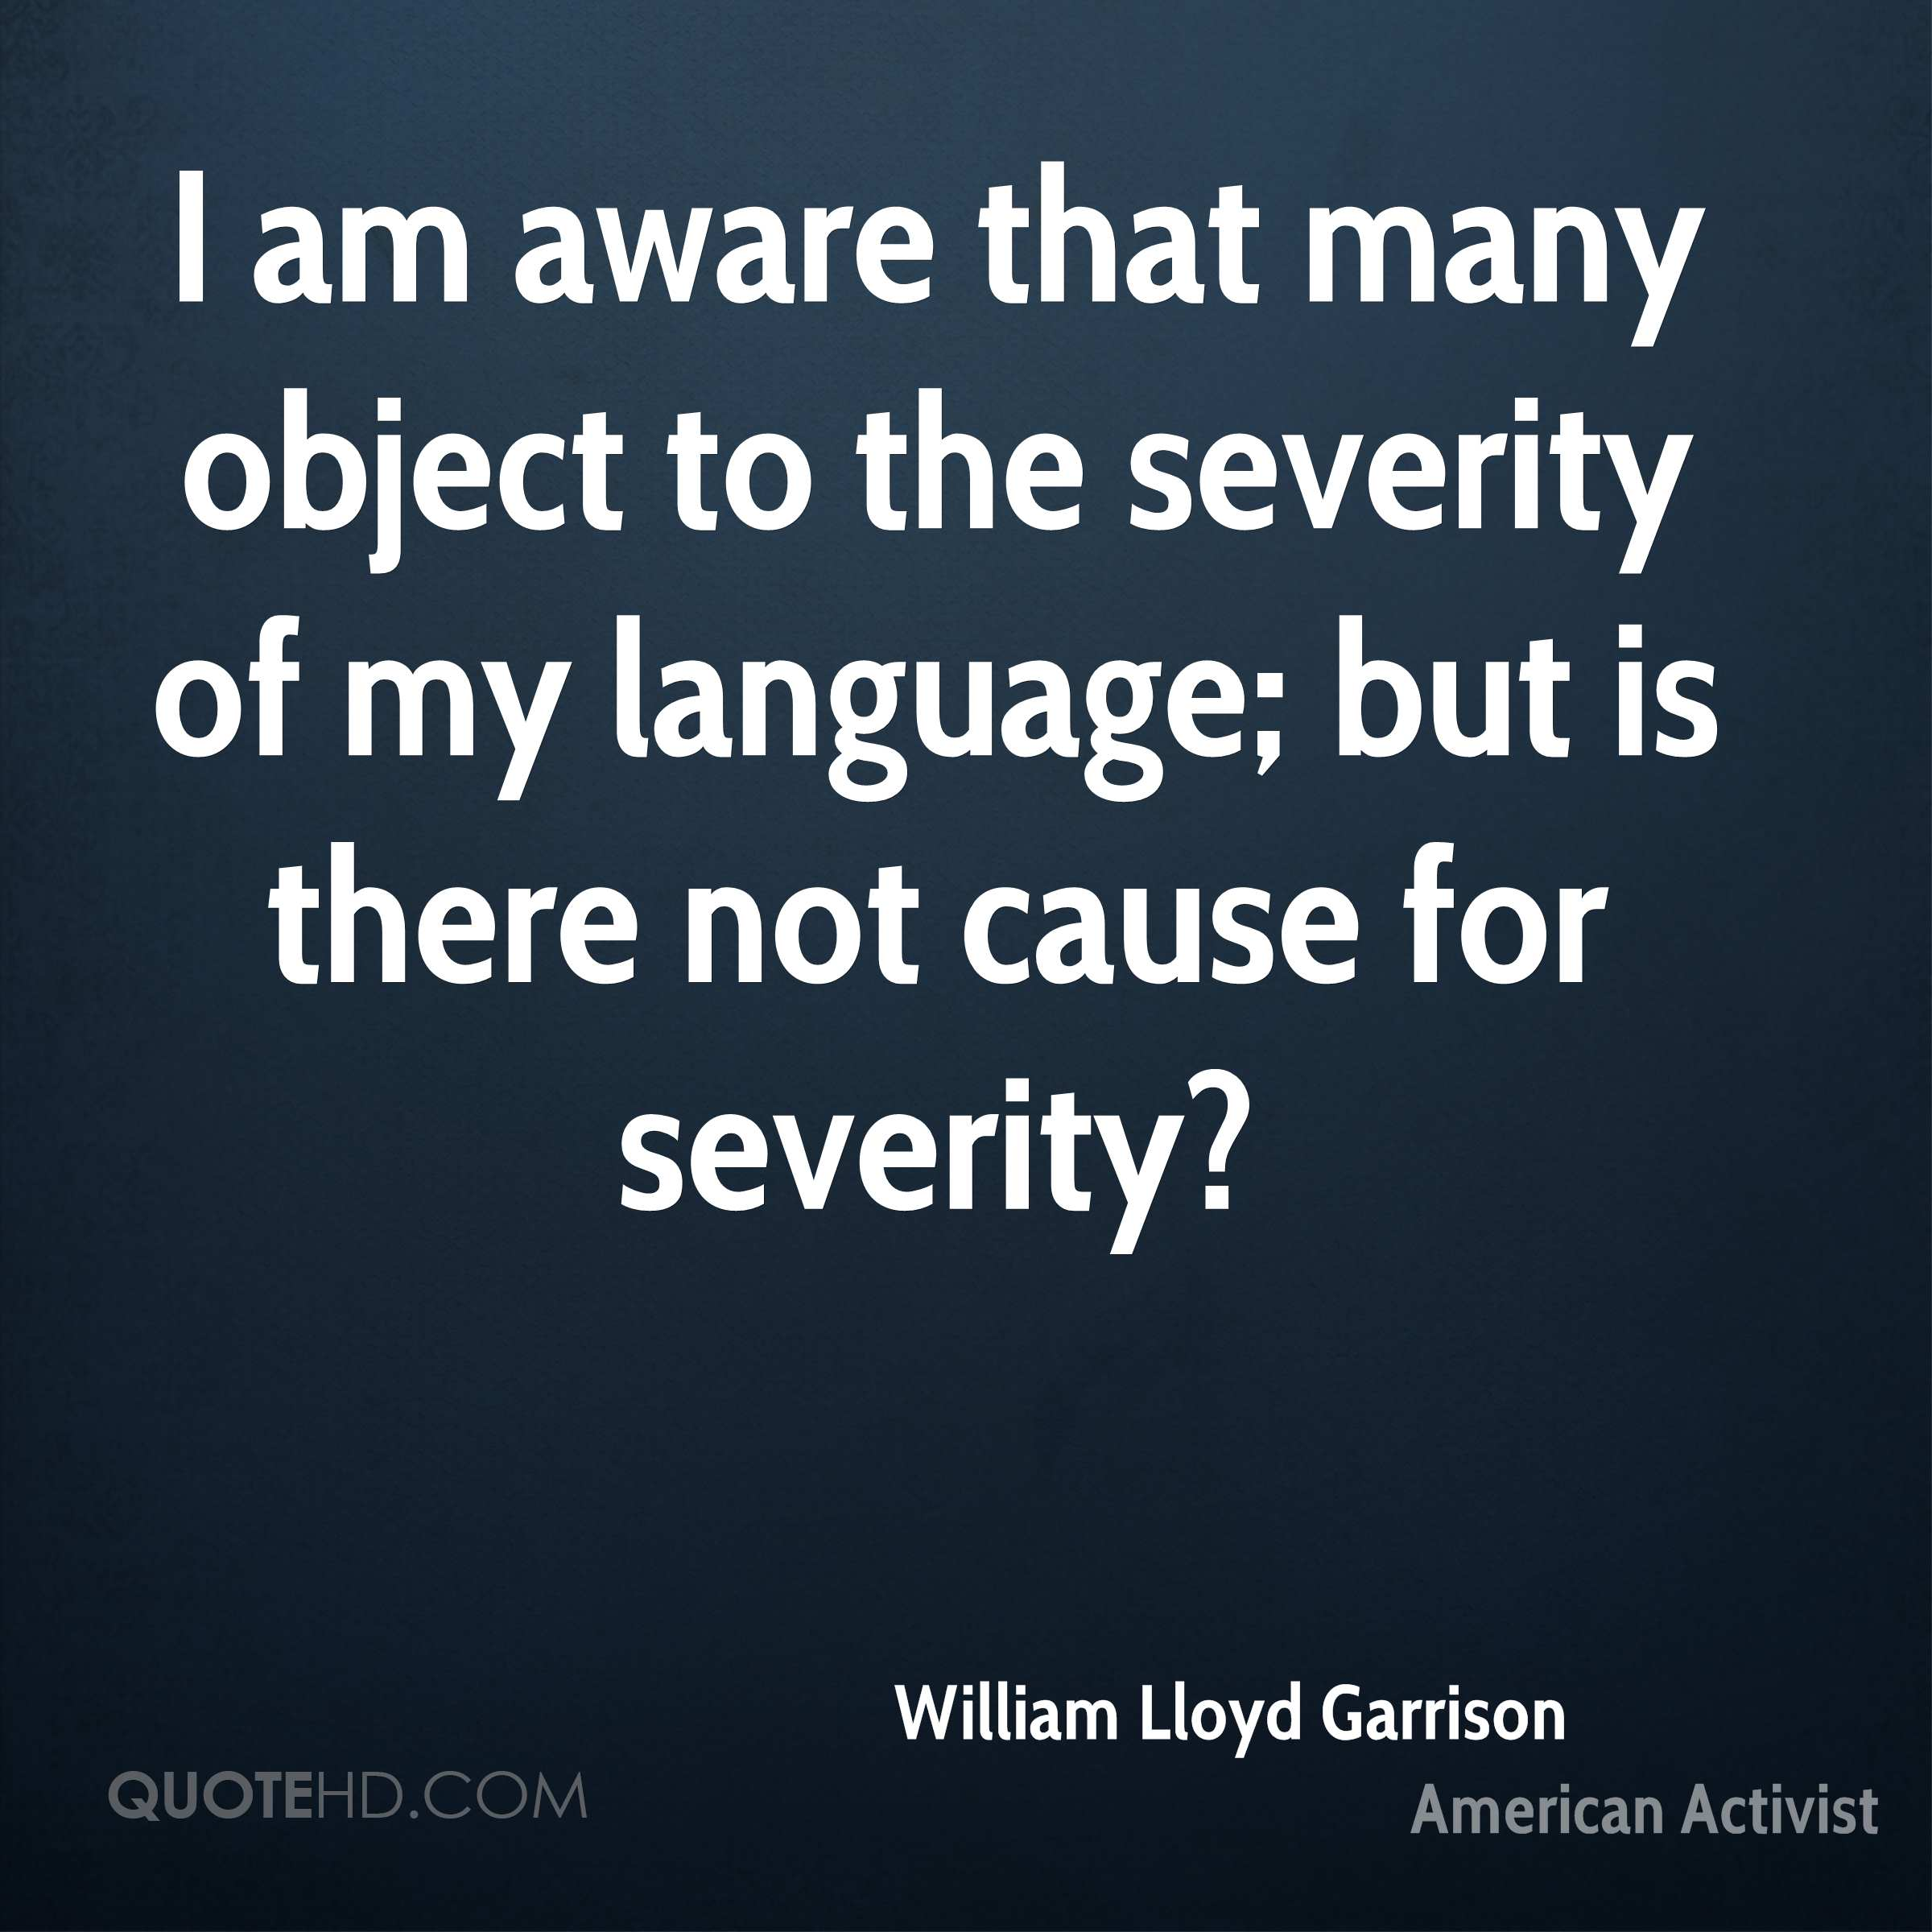 I am aware that many object to the severity of my language; but is there not cause for severity?